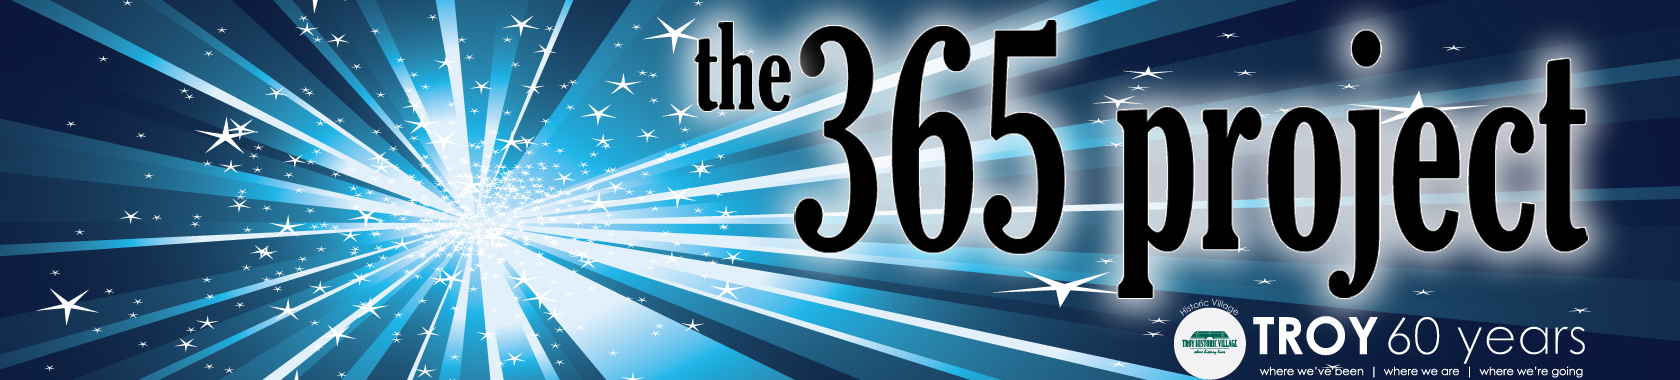 The 365 Project